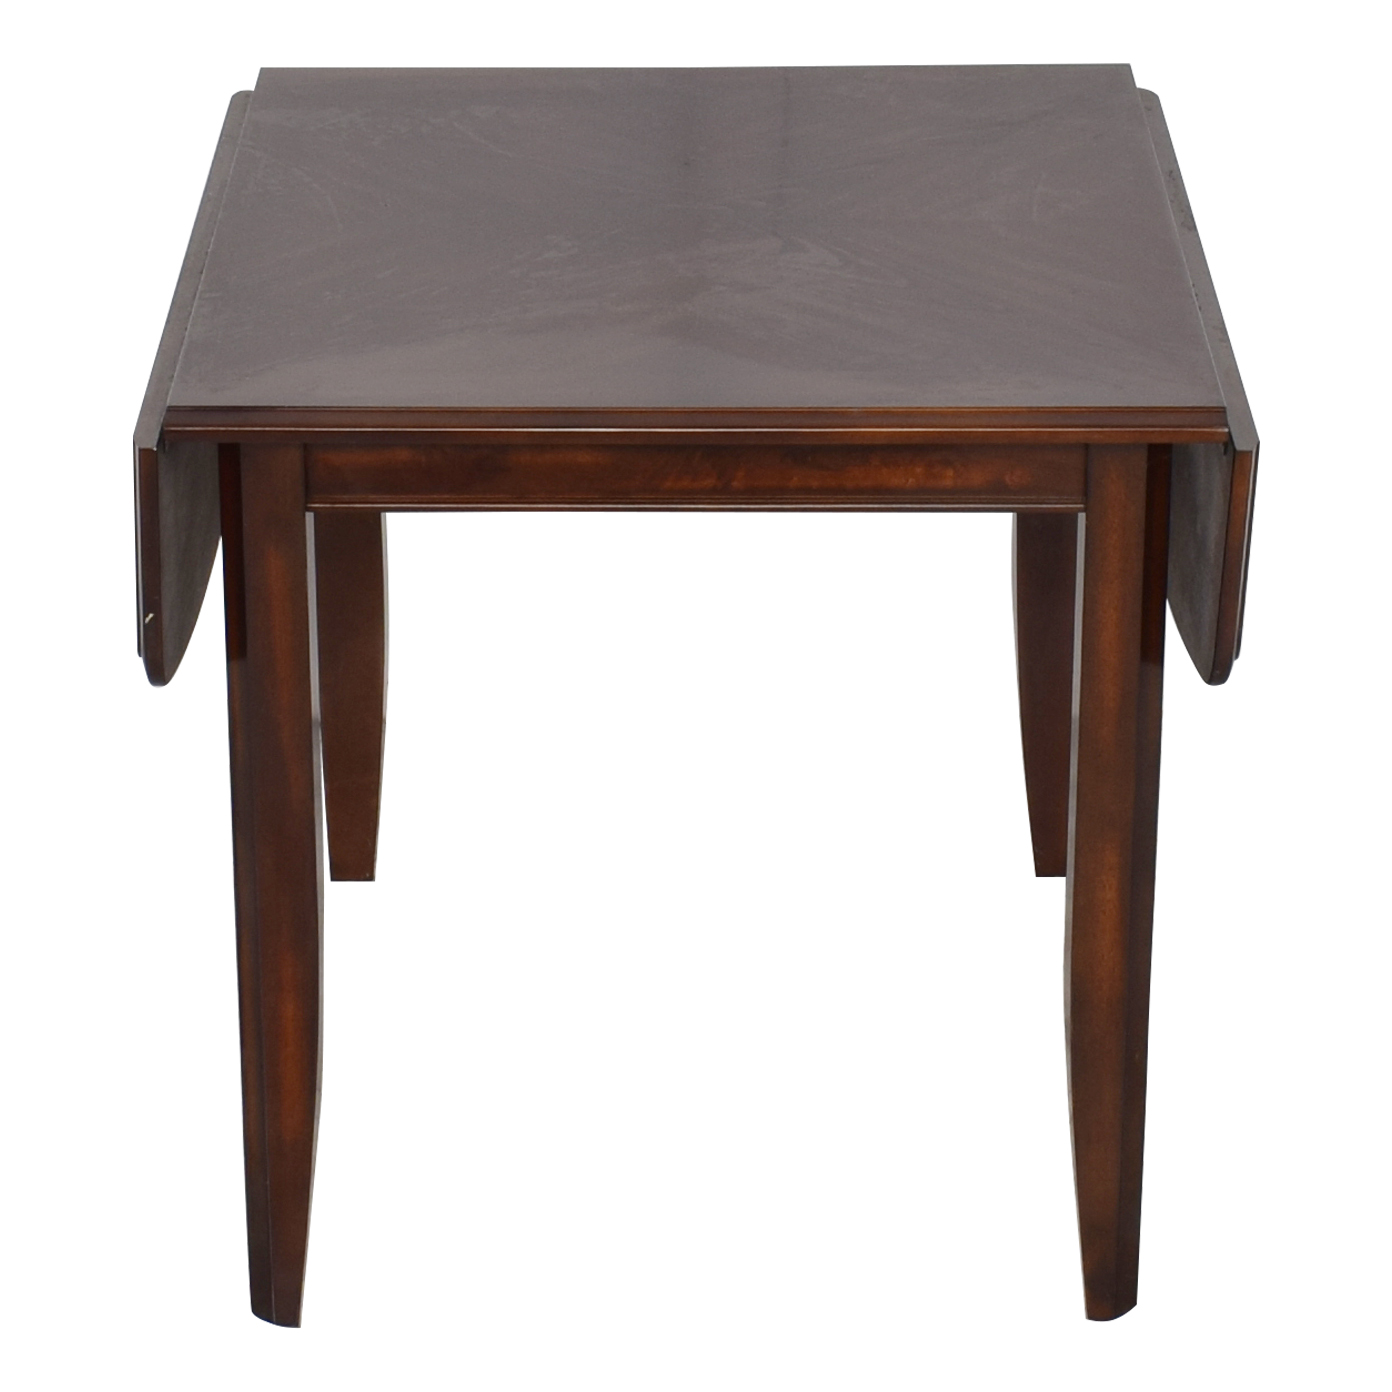 Holland House Holland House Furniture Dining Table nj